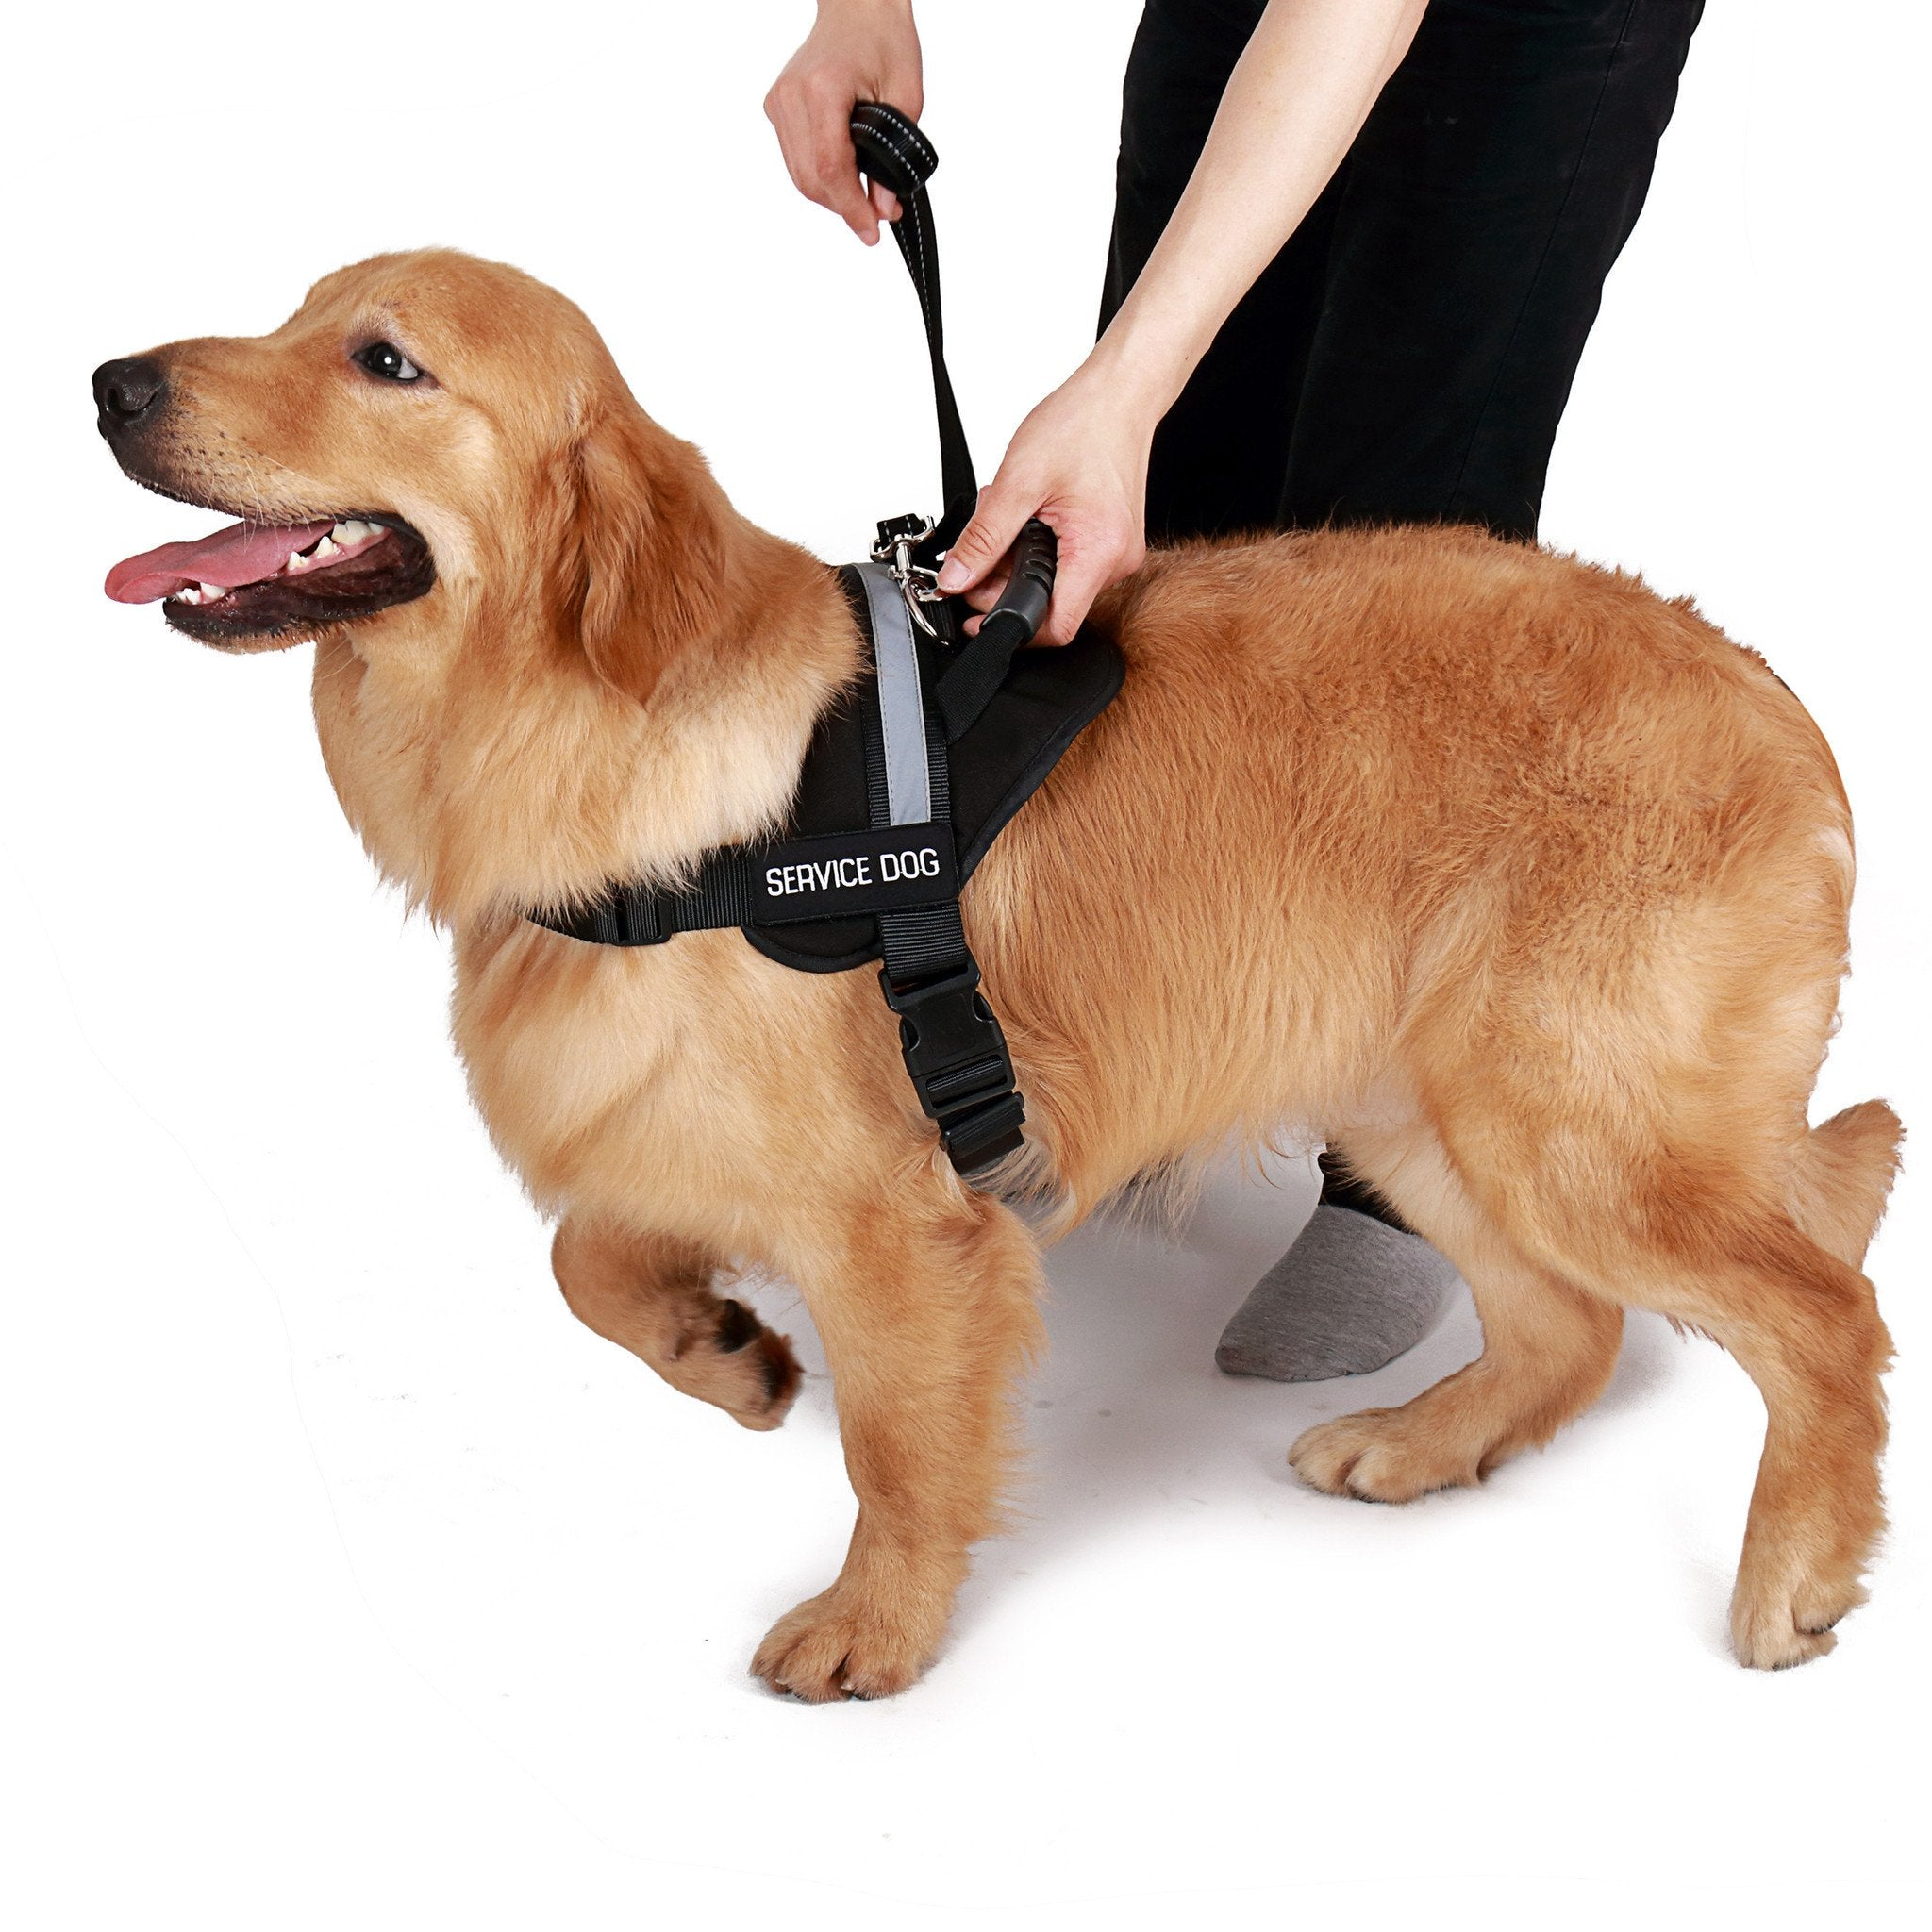 Service Dog Vest w/ Handle Basic Registration Package ($170 Value